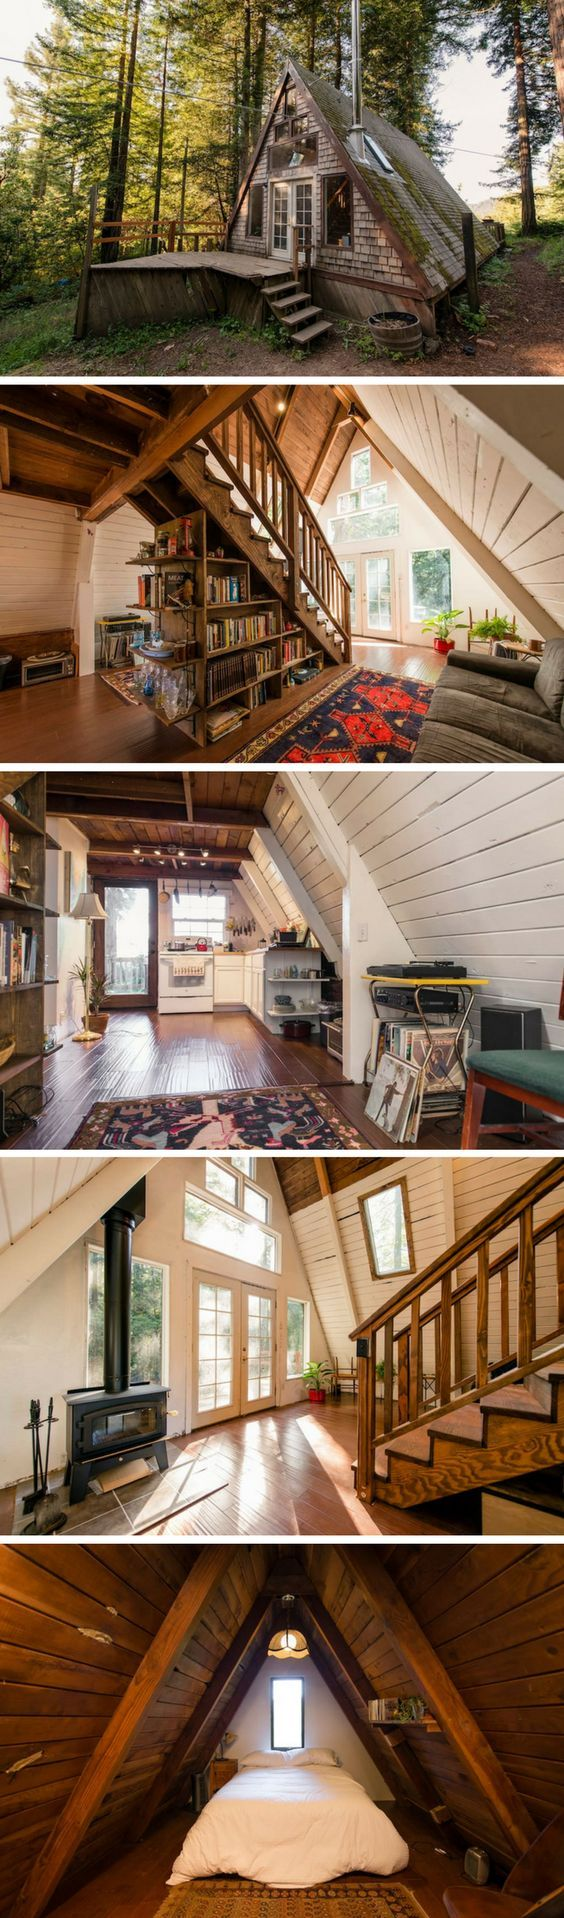 best 25 a frame house kits ideas on pinterest lake cabin best 25 a frame house kits ideas on pinterest lake cabin interiors lakes cottage holidays and a frame house